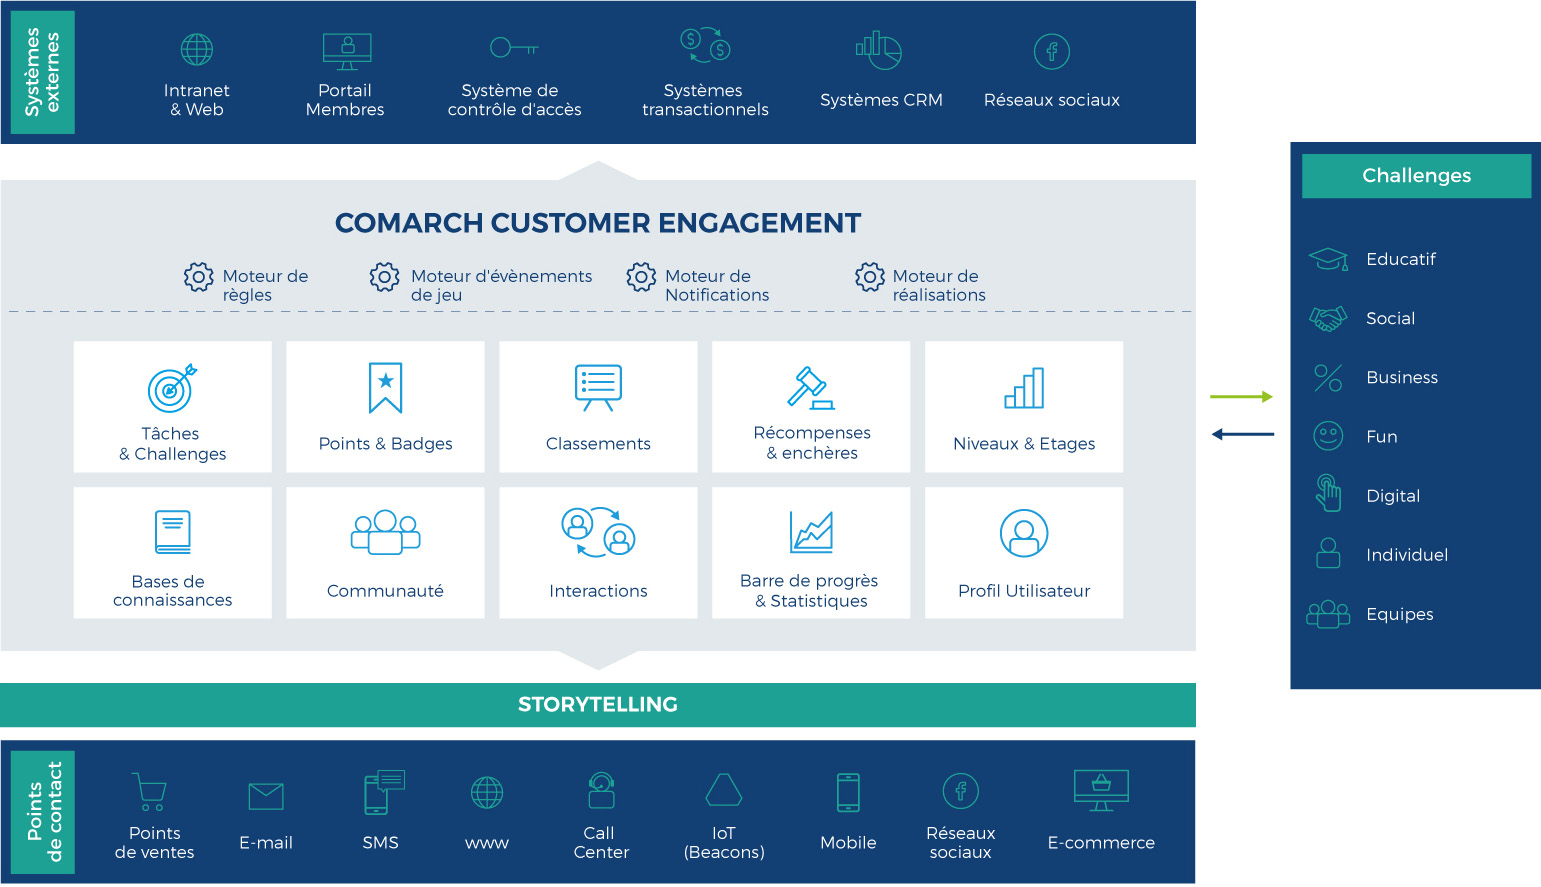 comarch customer engagement